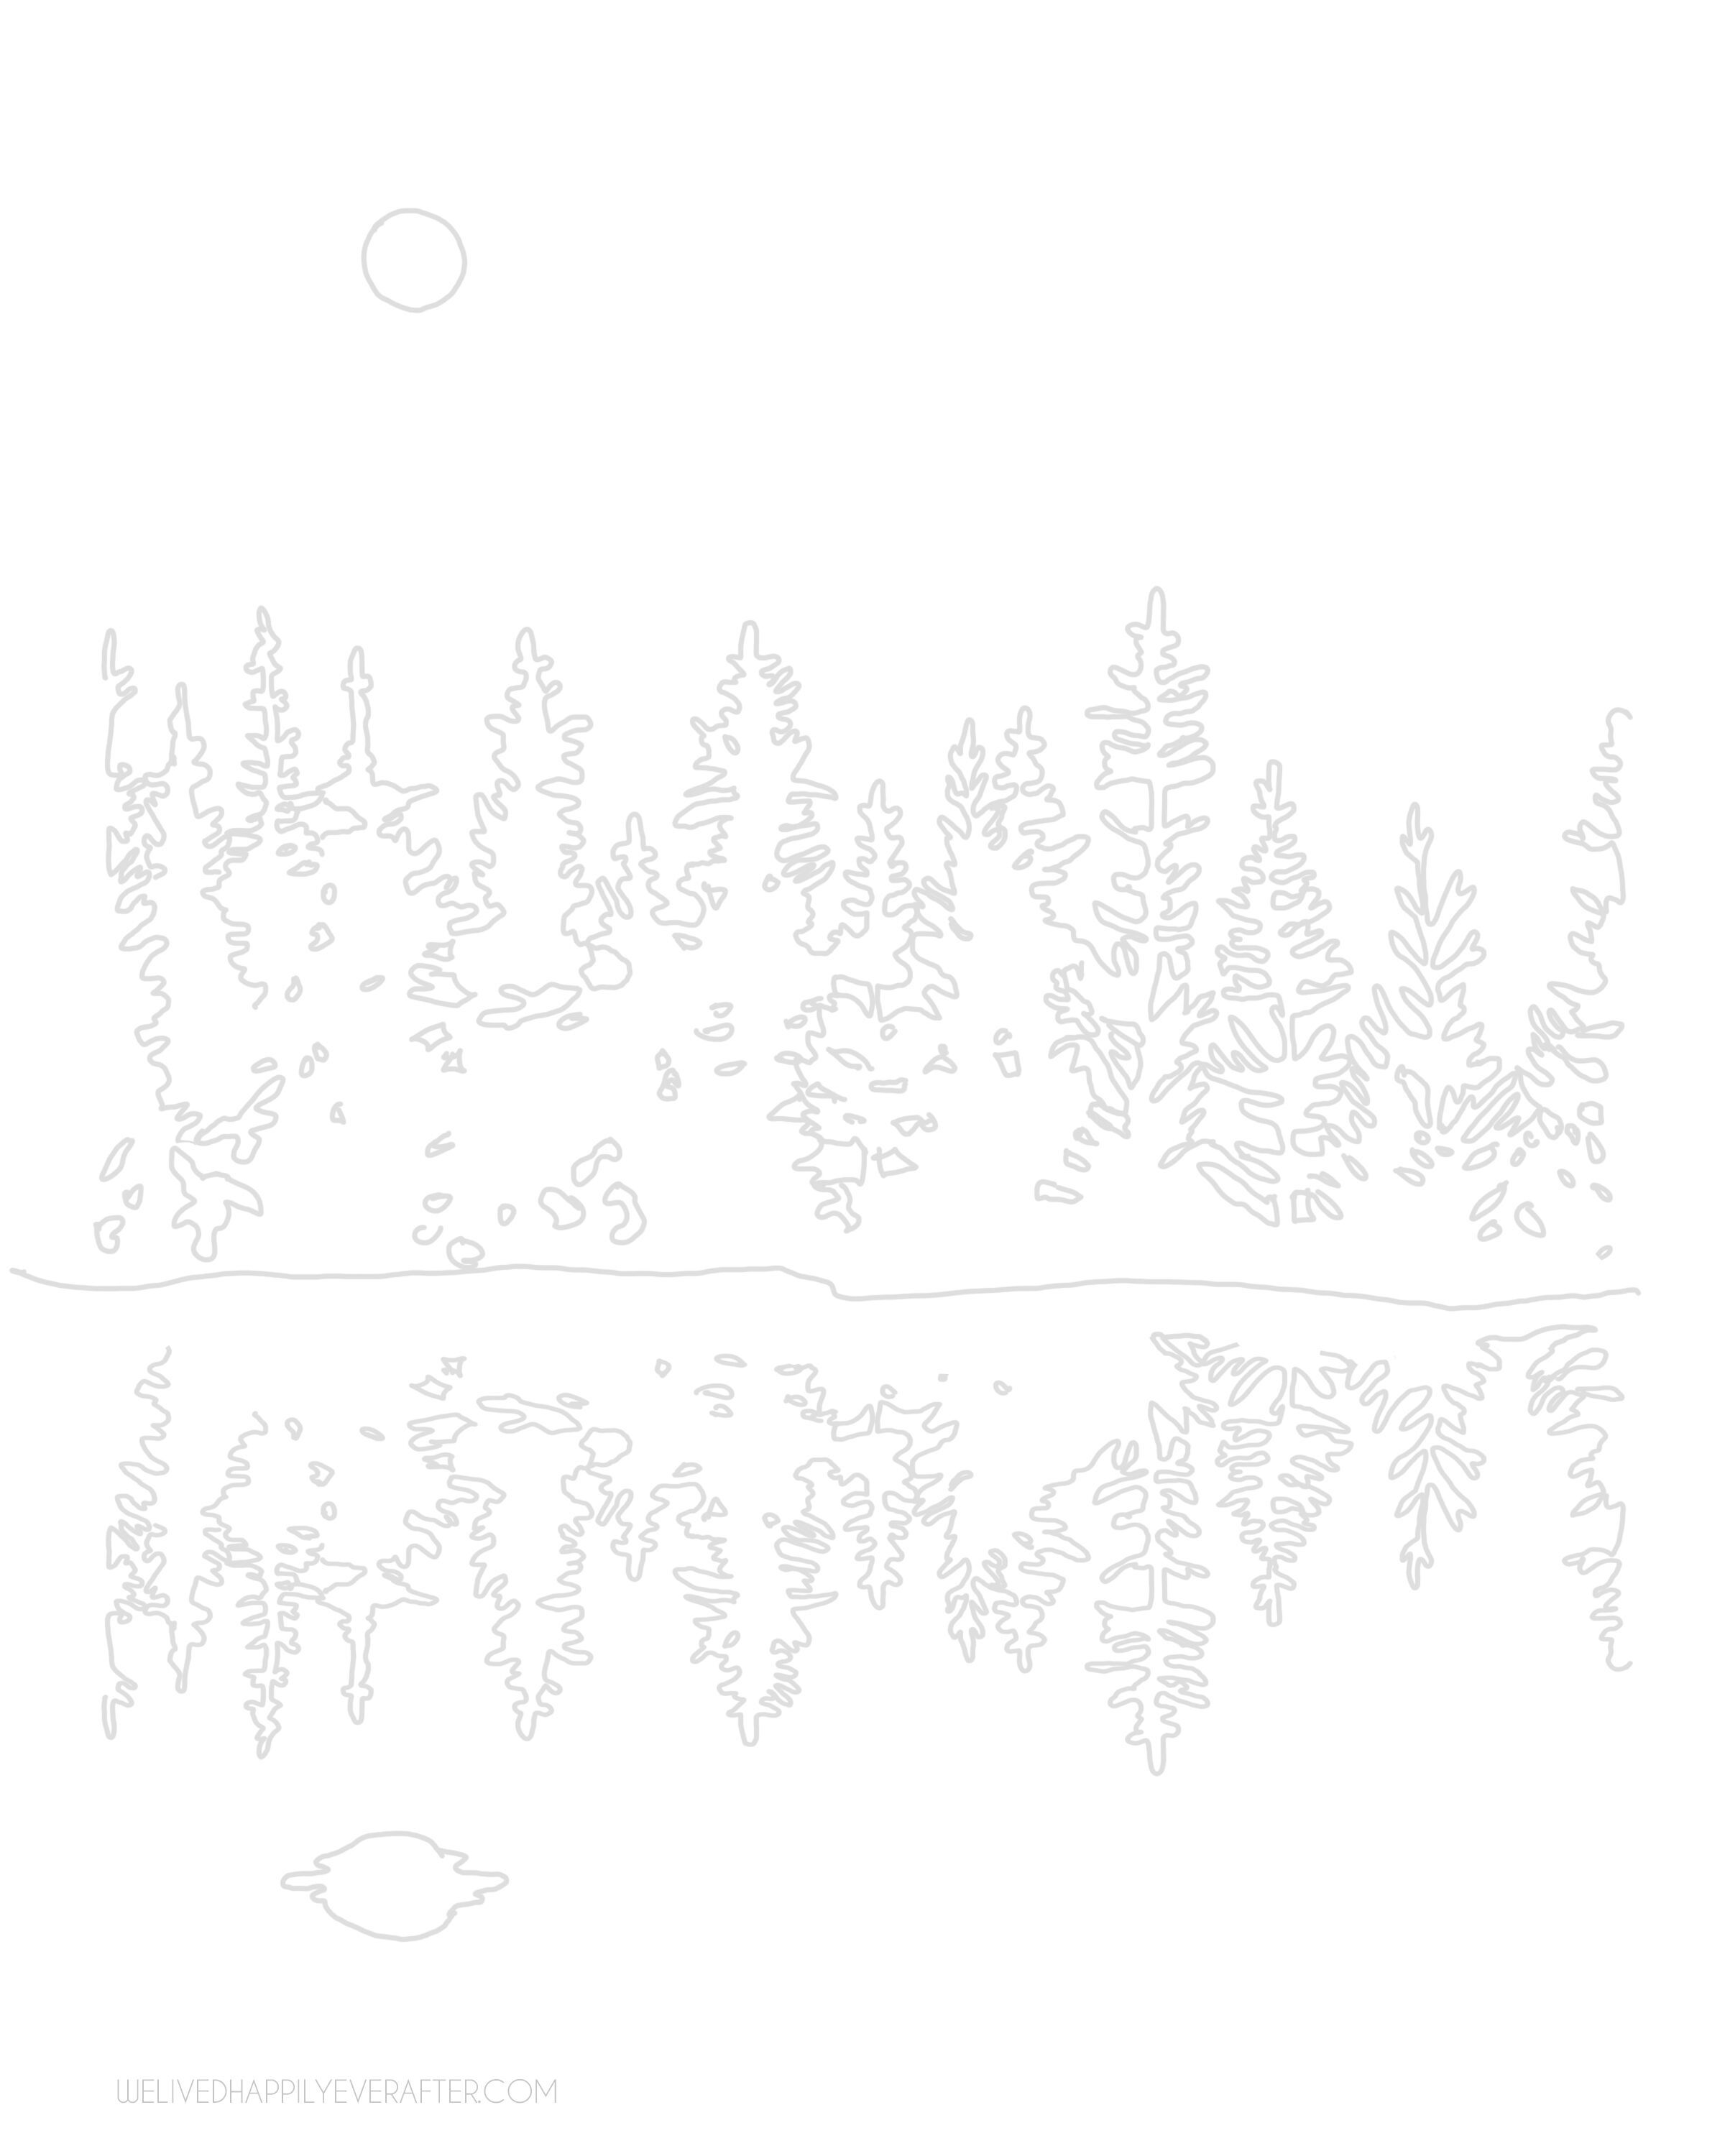 Printable Watercolor Night Time Pine Tree Adult Coloring